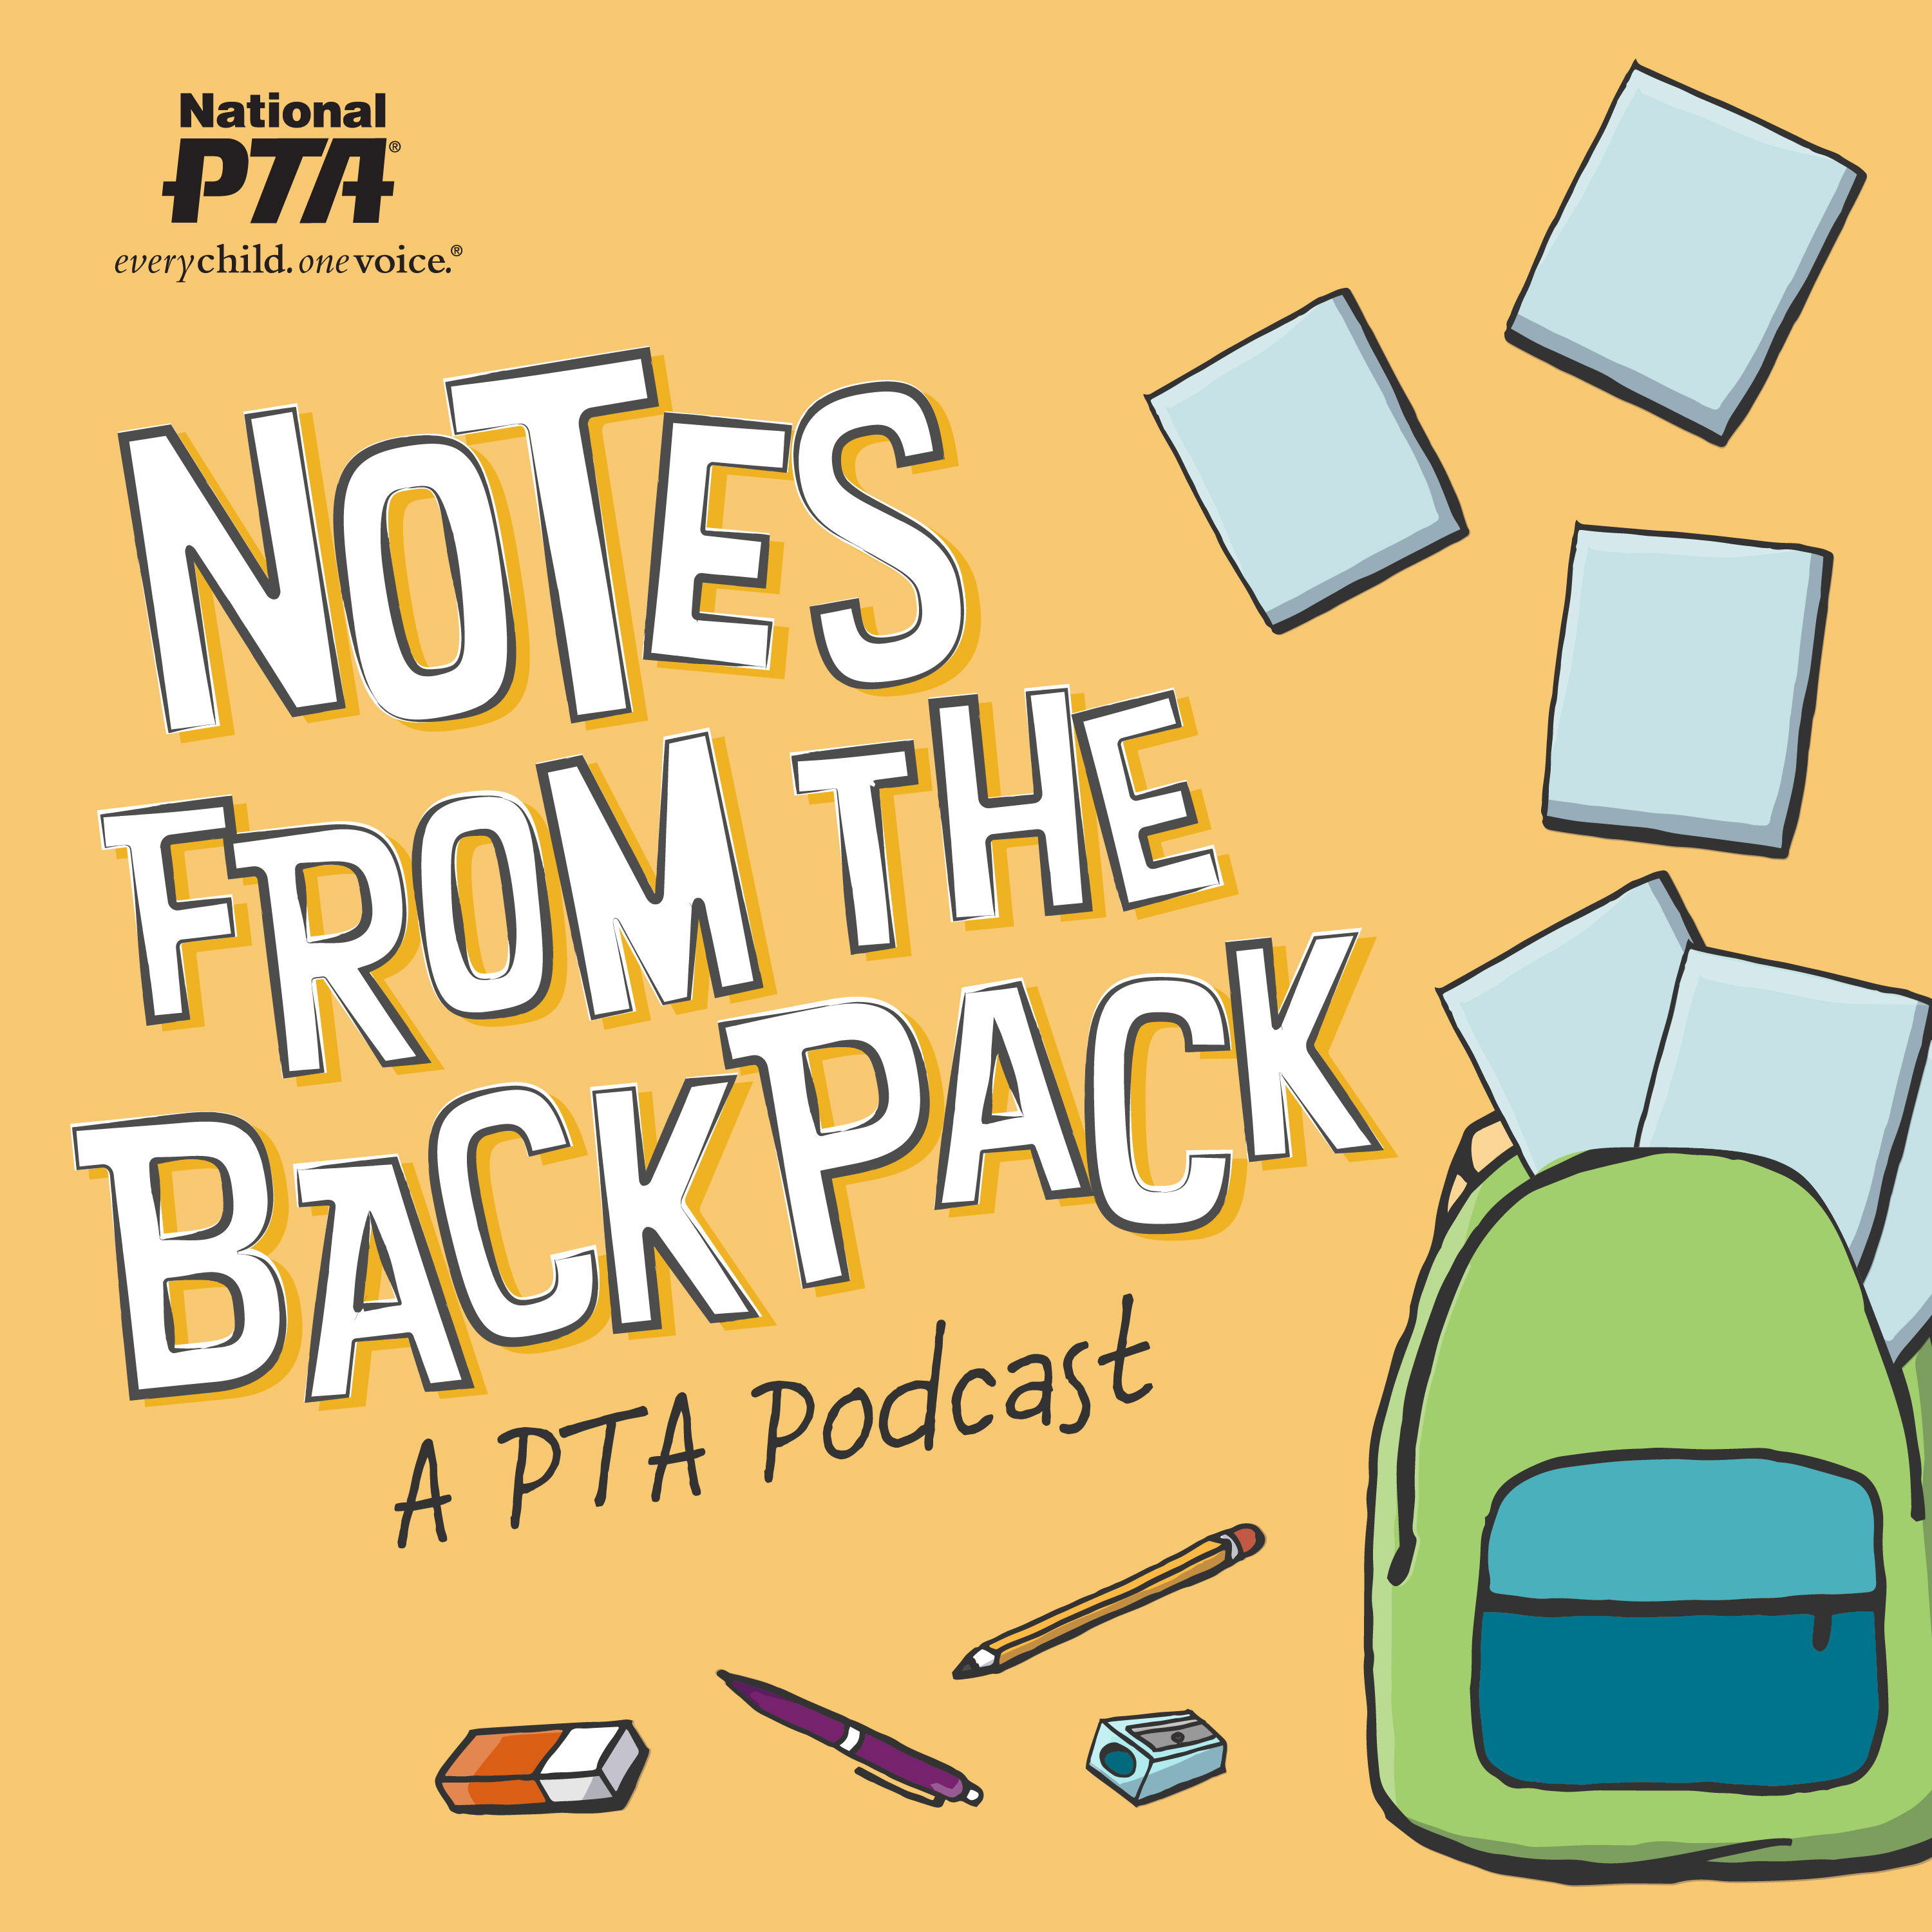 Notes from the Backpack: A PTA Podcast show art